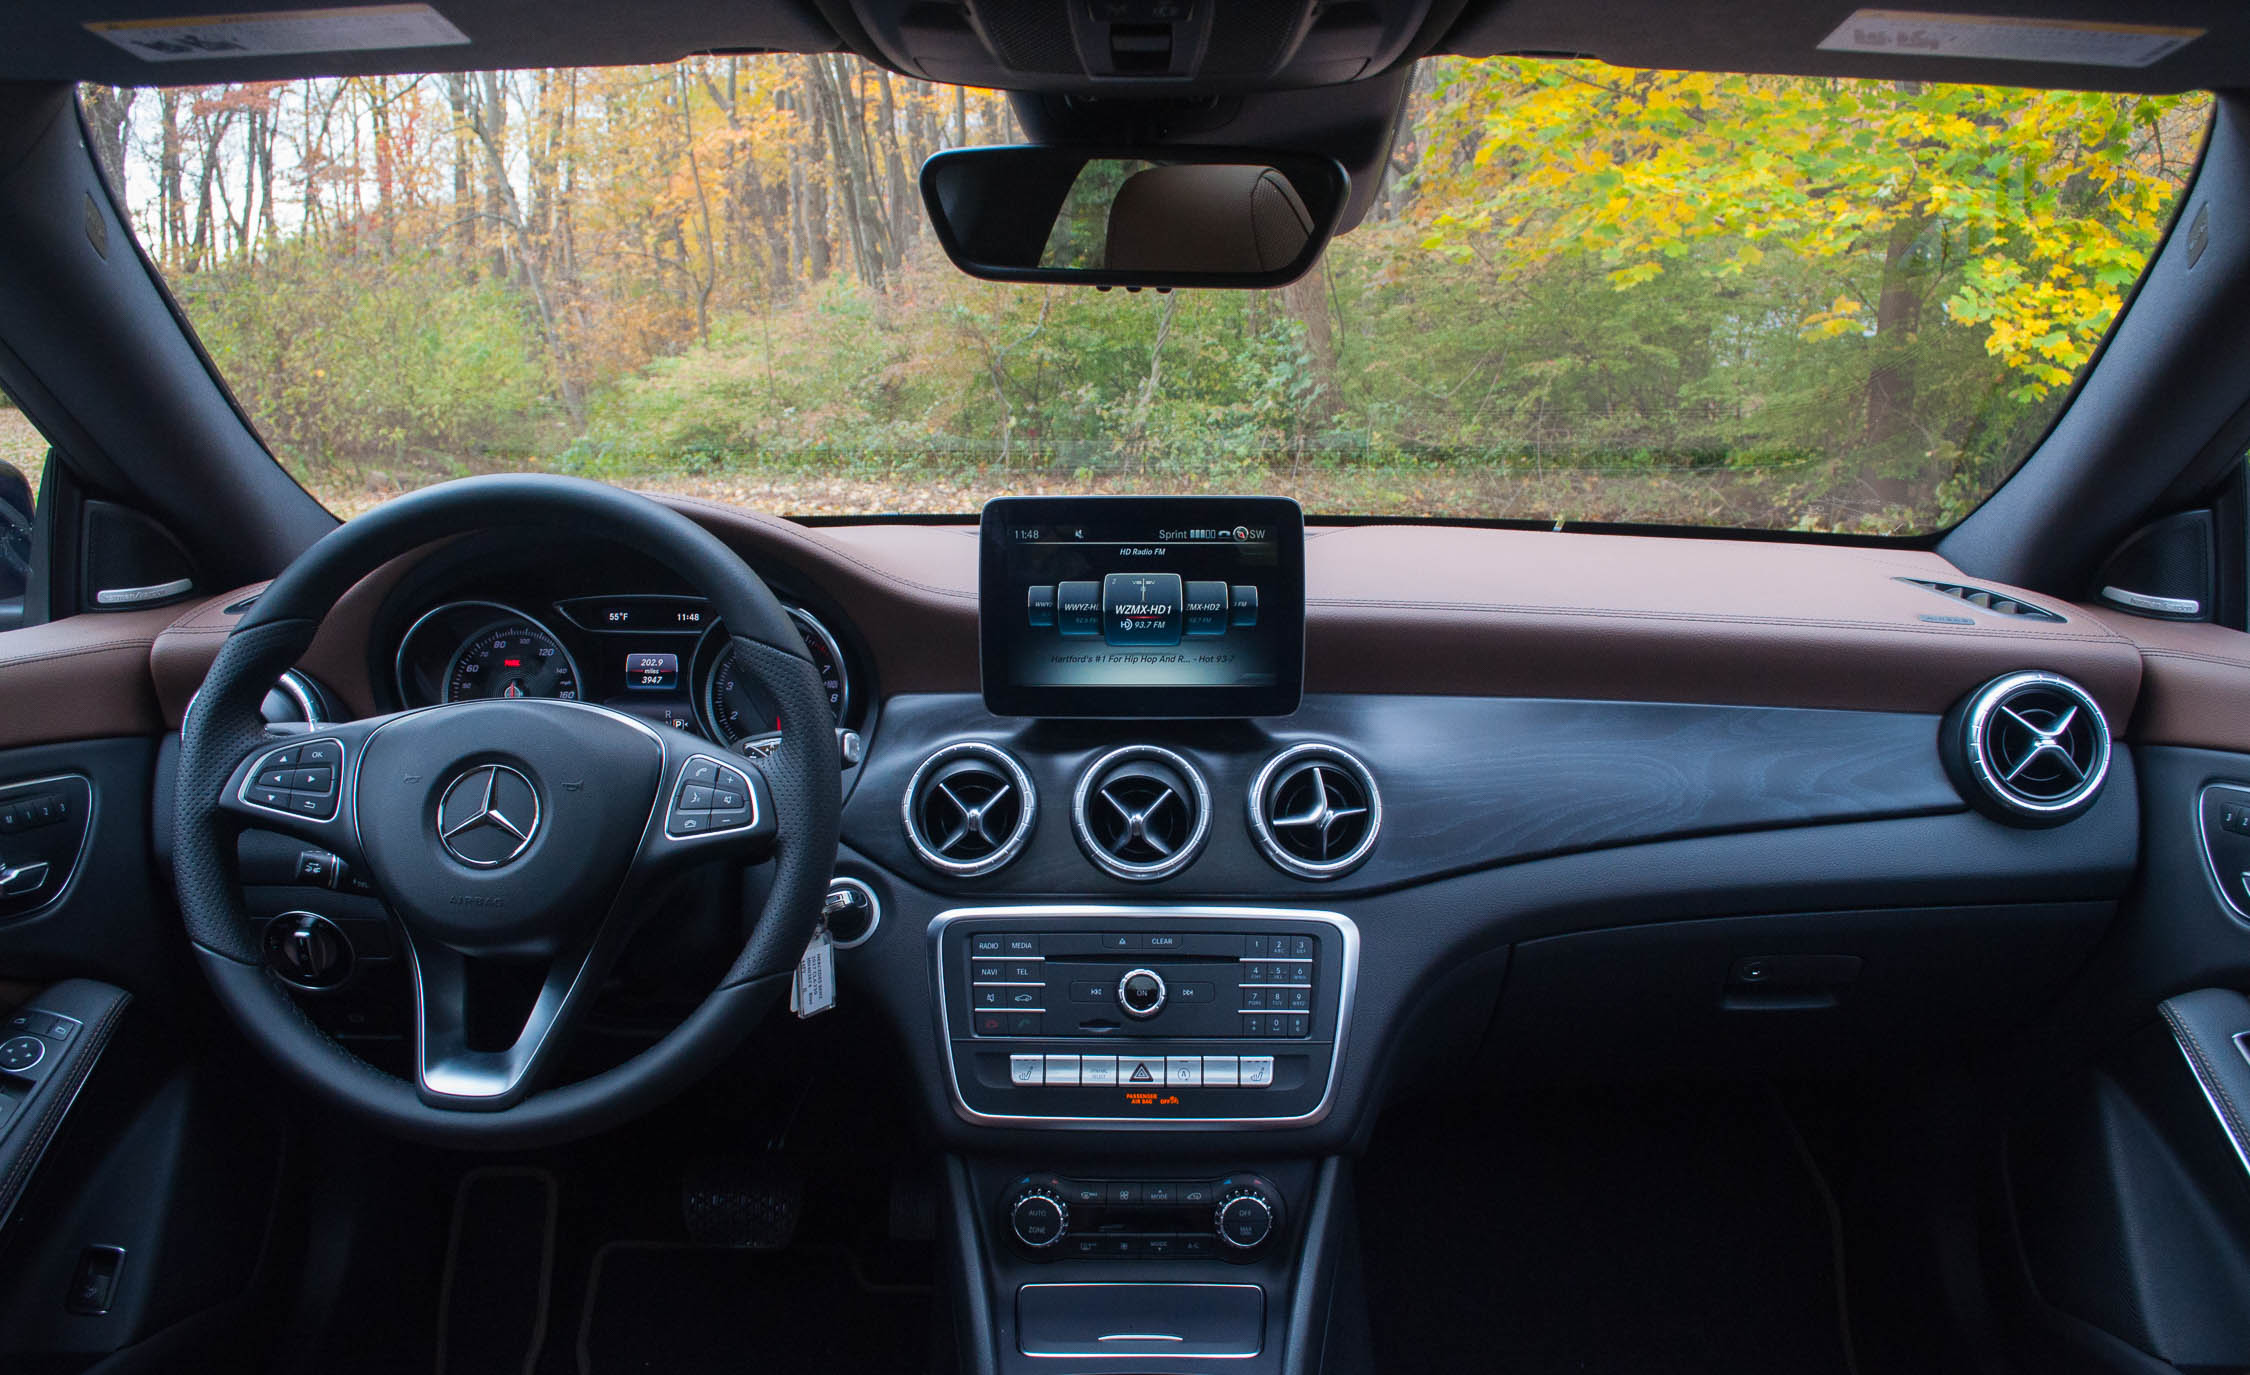 2017 Mercedes Benz CLA250 4MATIC Interior Dashboard (Photo 16 Of 21)